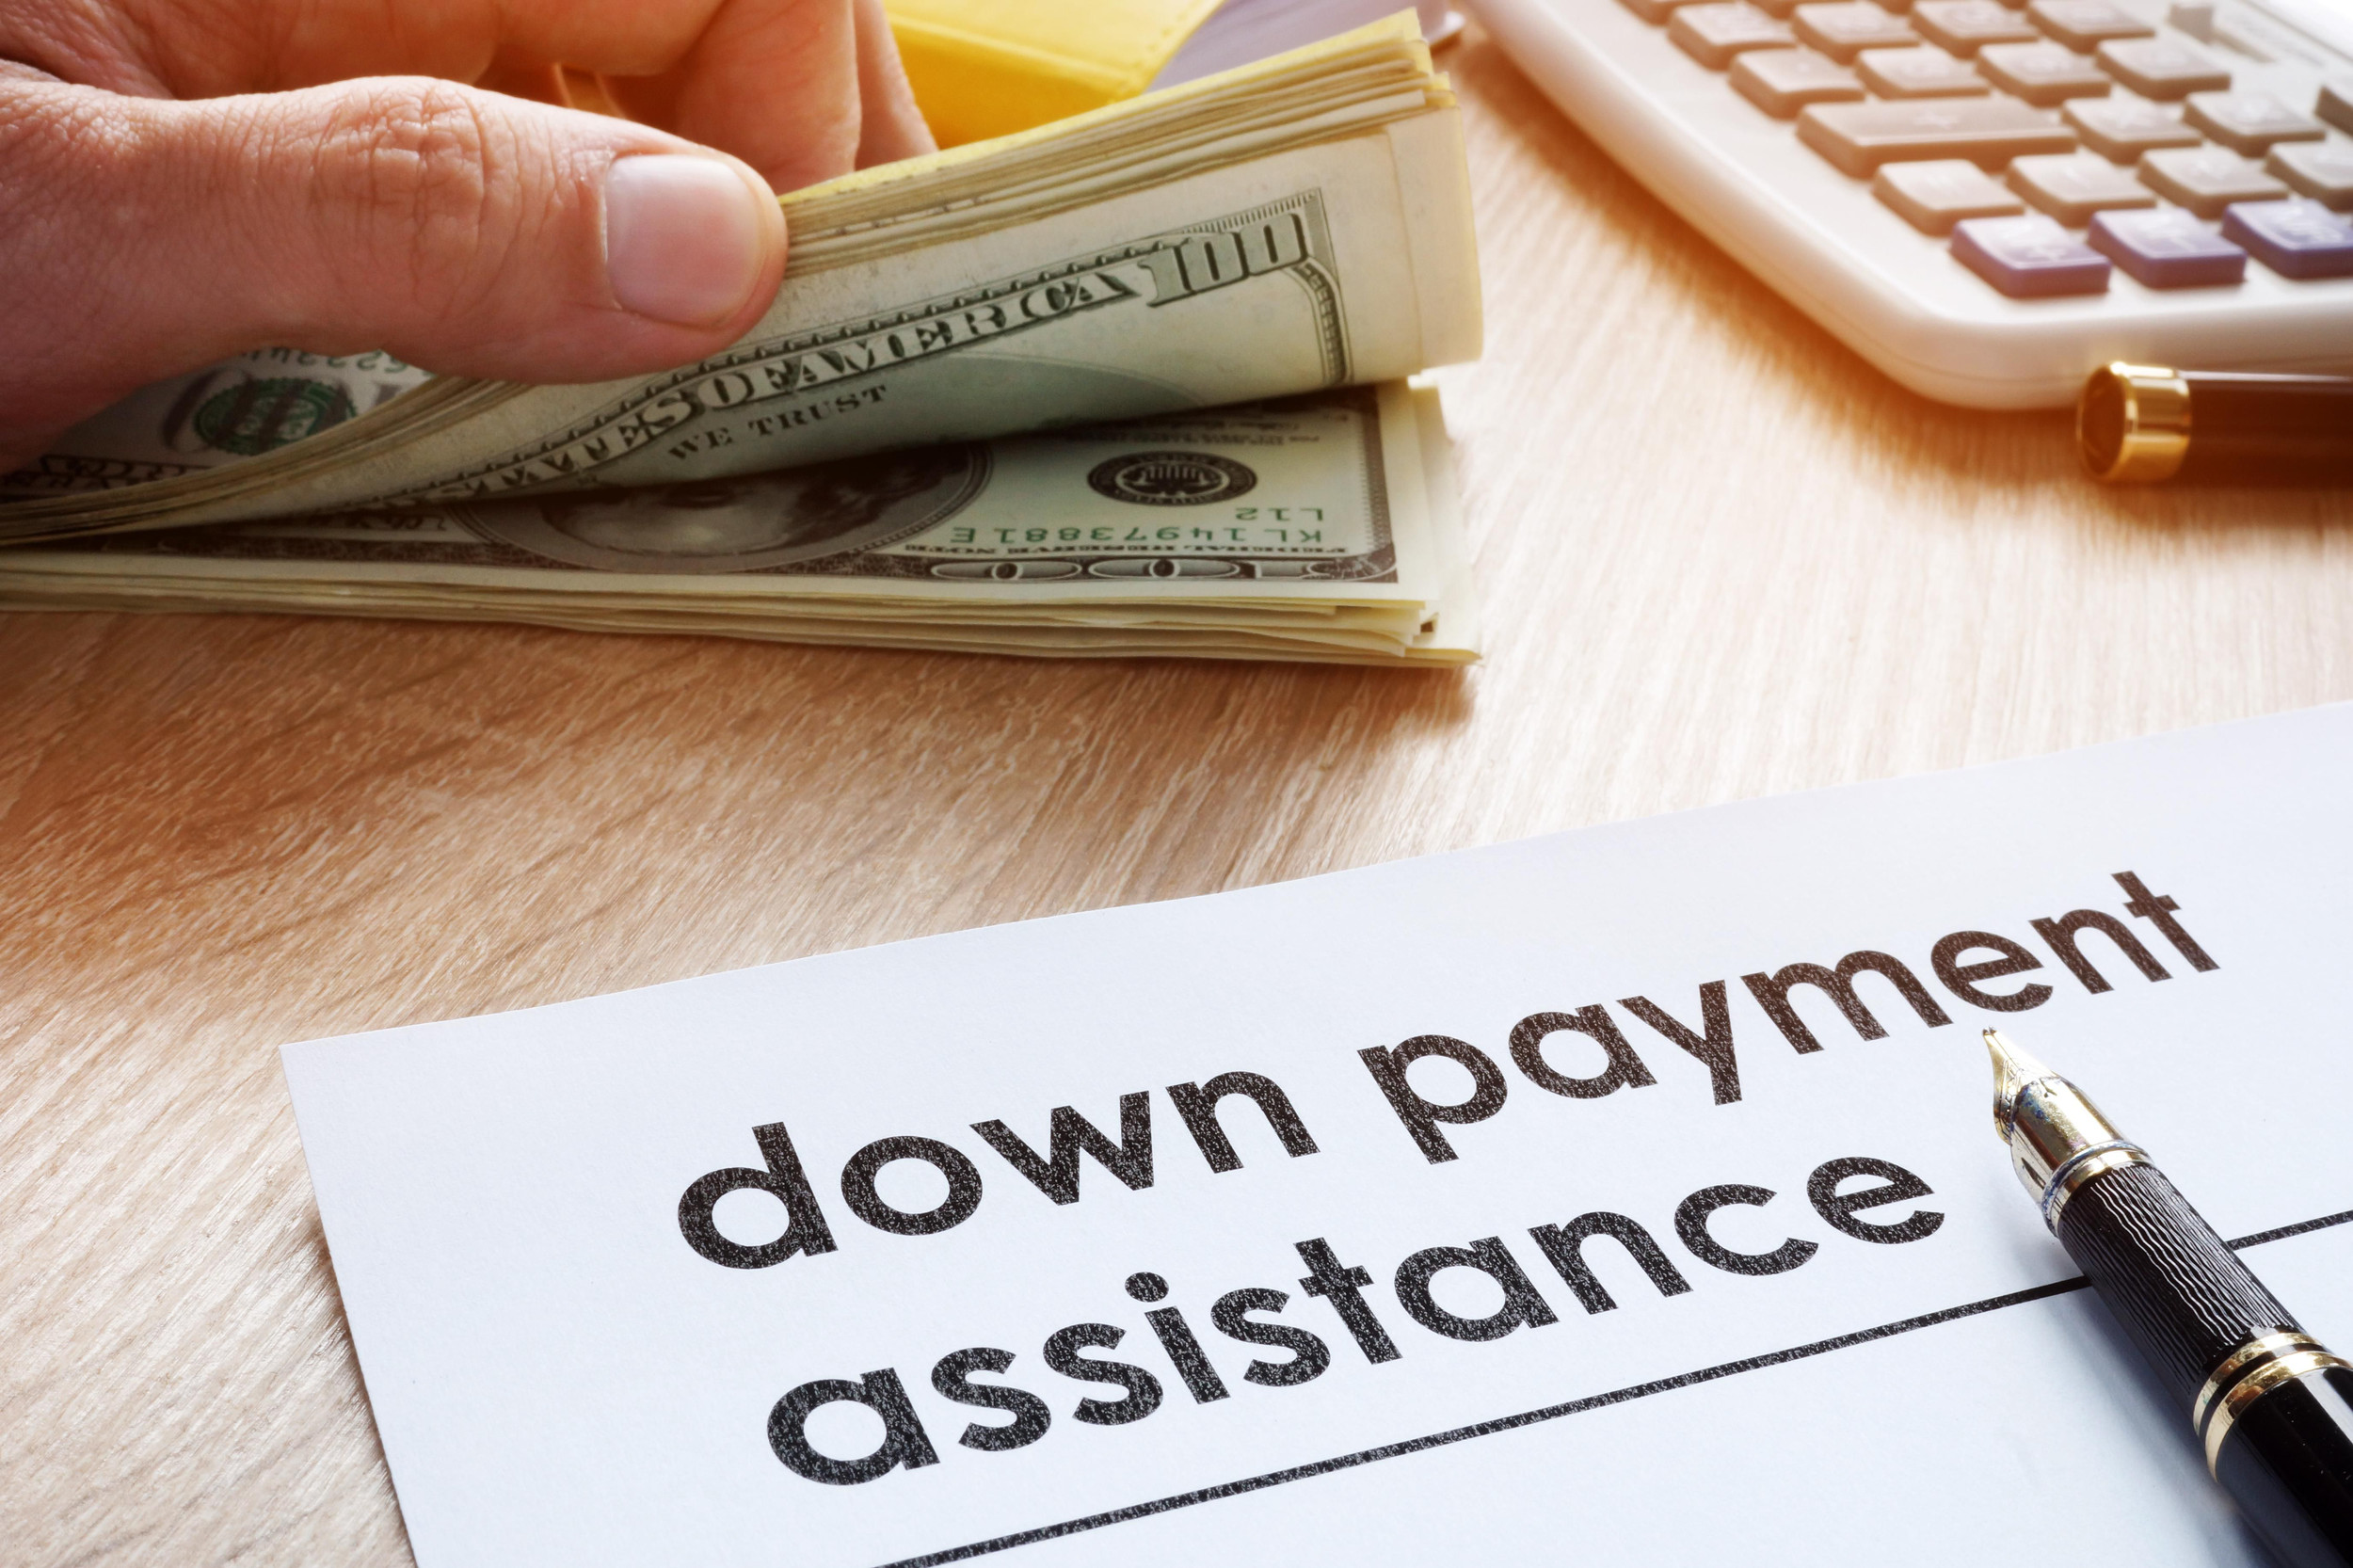 How to get the down payment for a home purchase